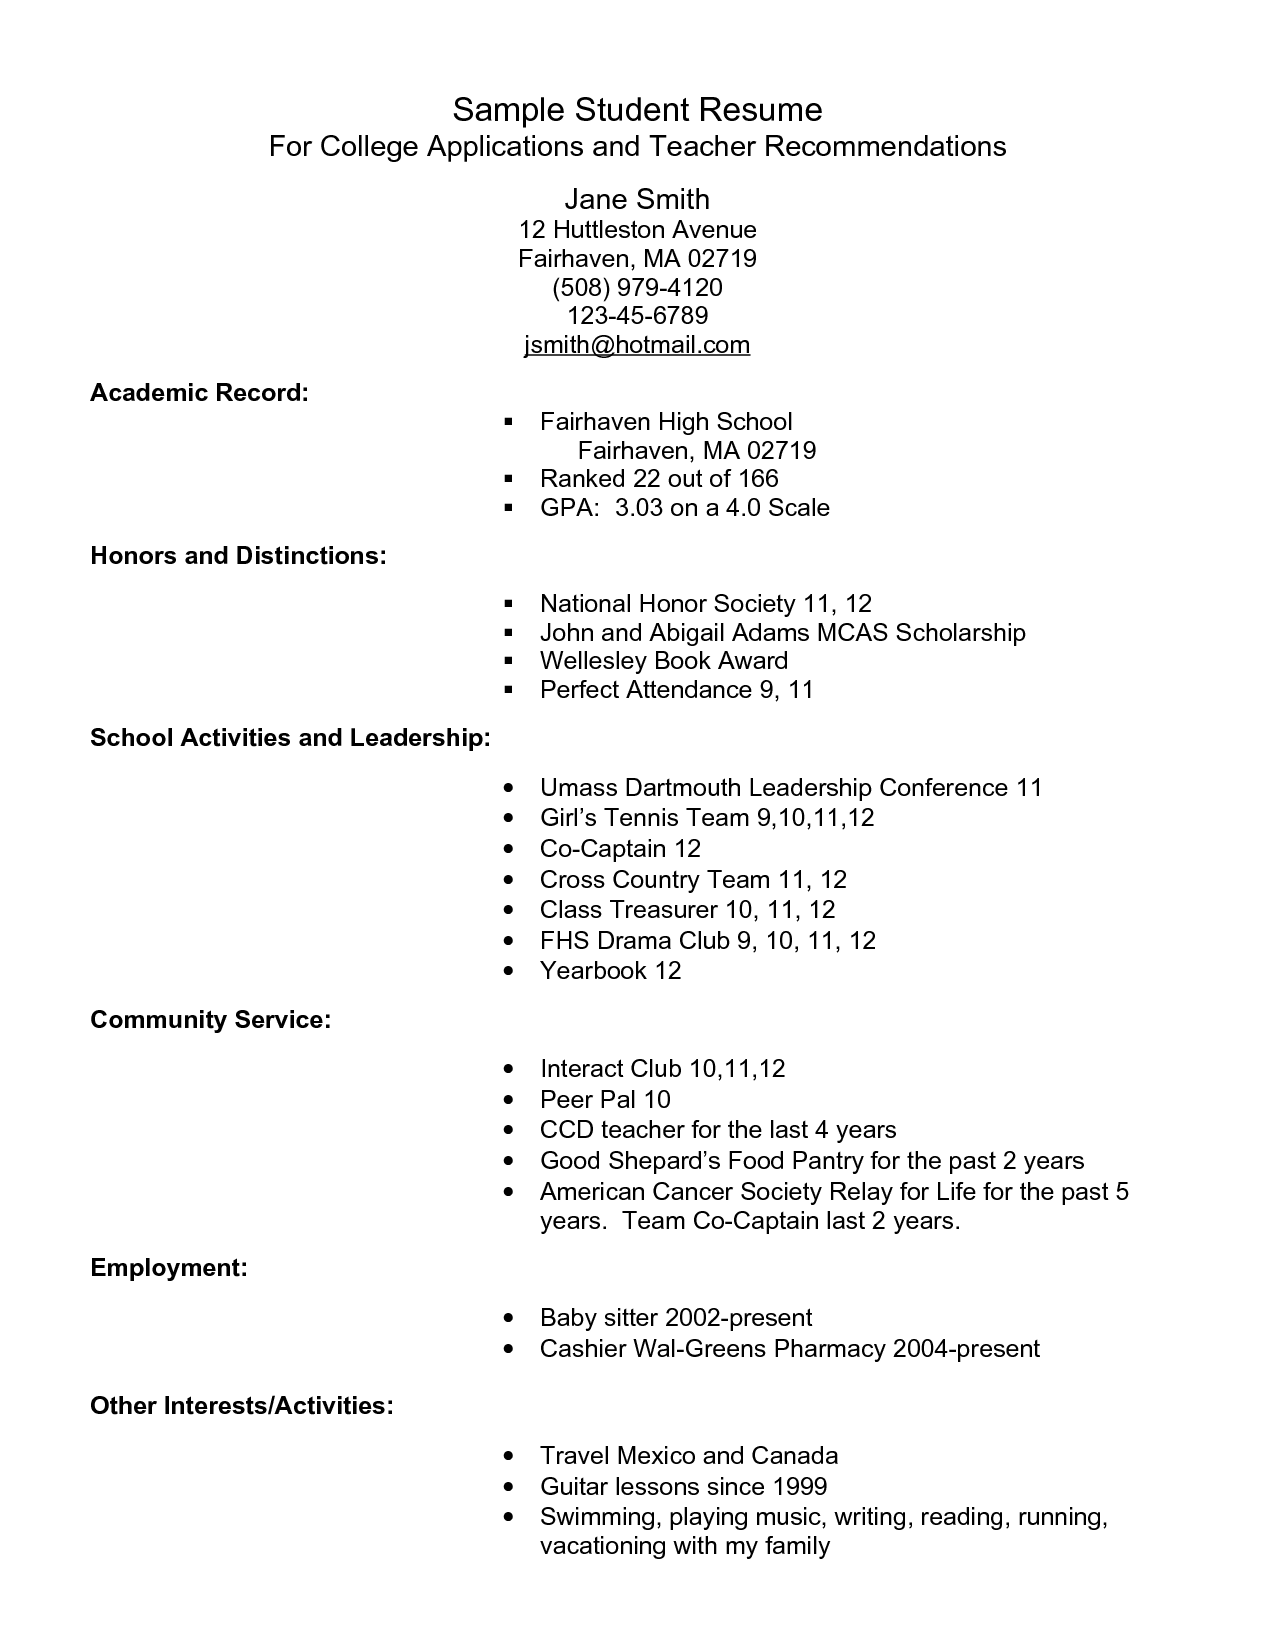 example resume for high school students for college applications example resume for high school students for college applications sample student resume pdf by smapdi59